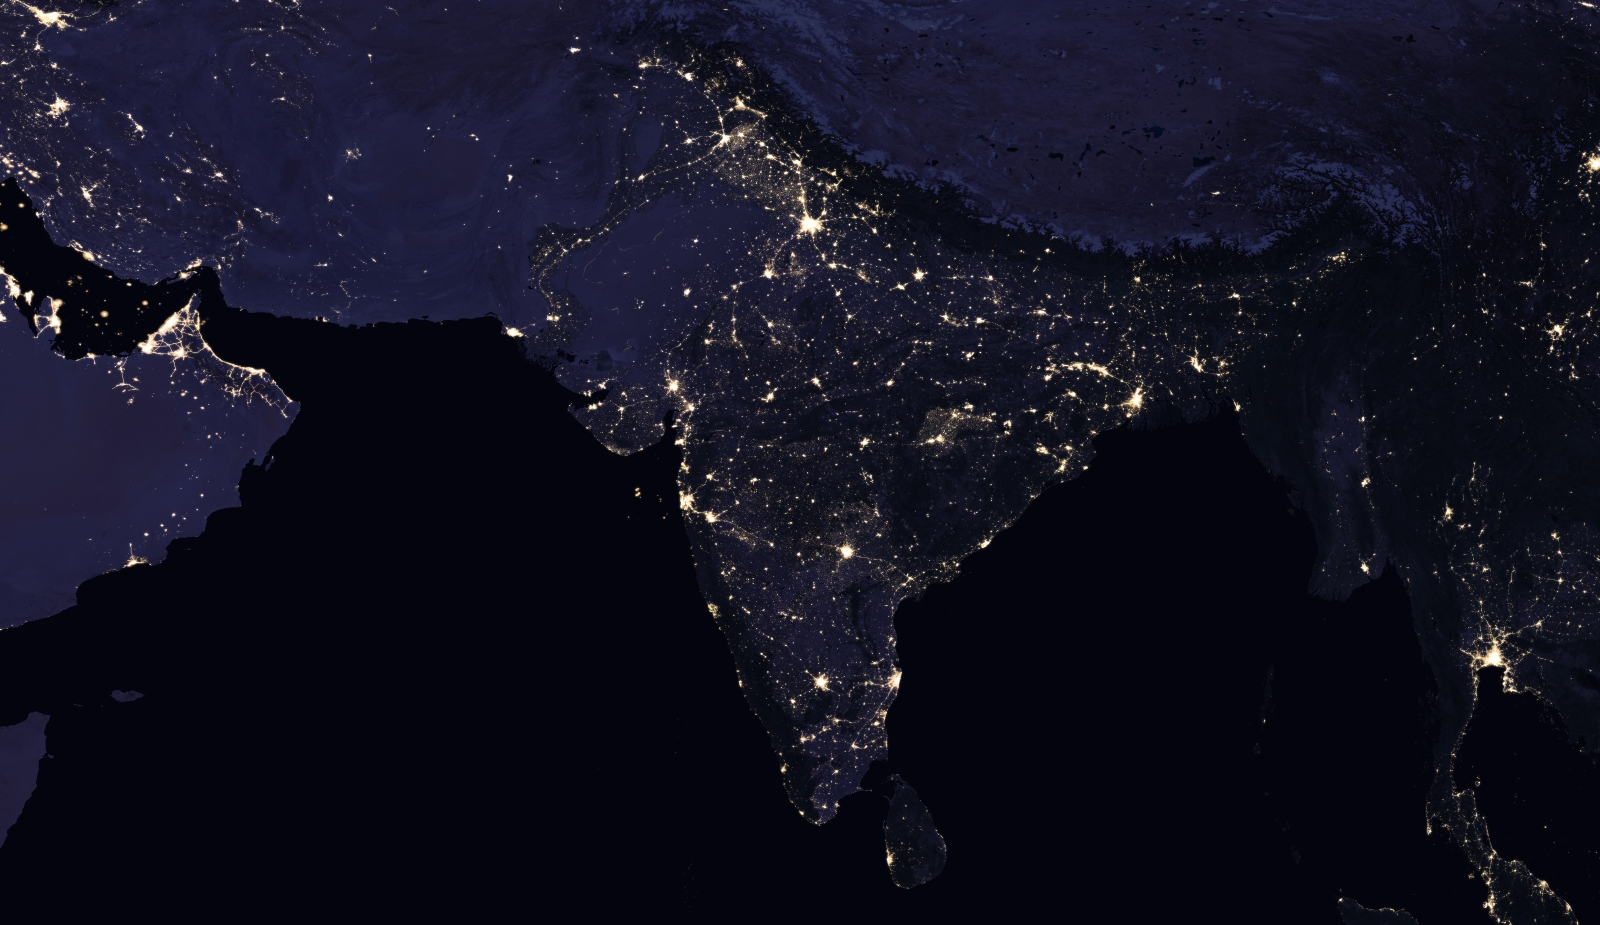 The Indian subcontinent at night